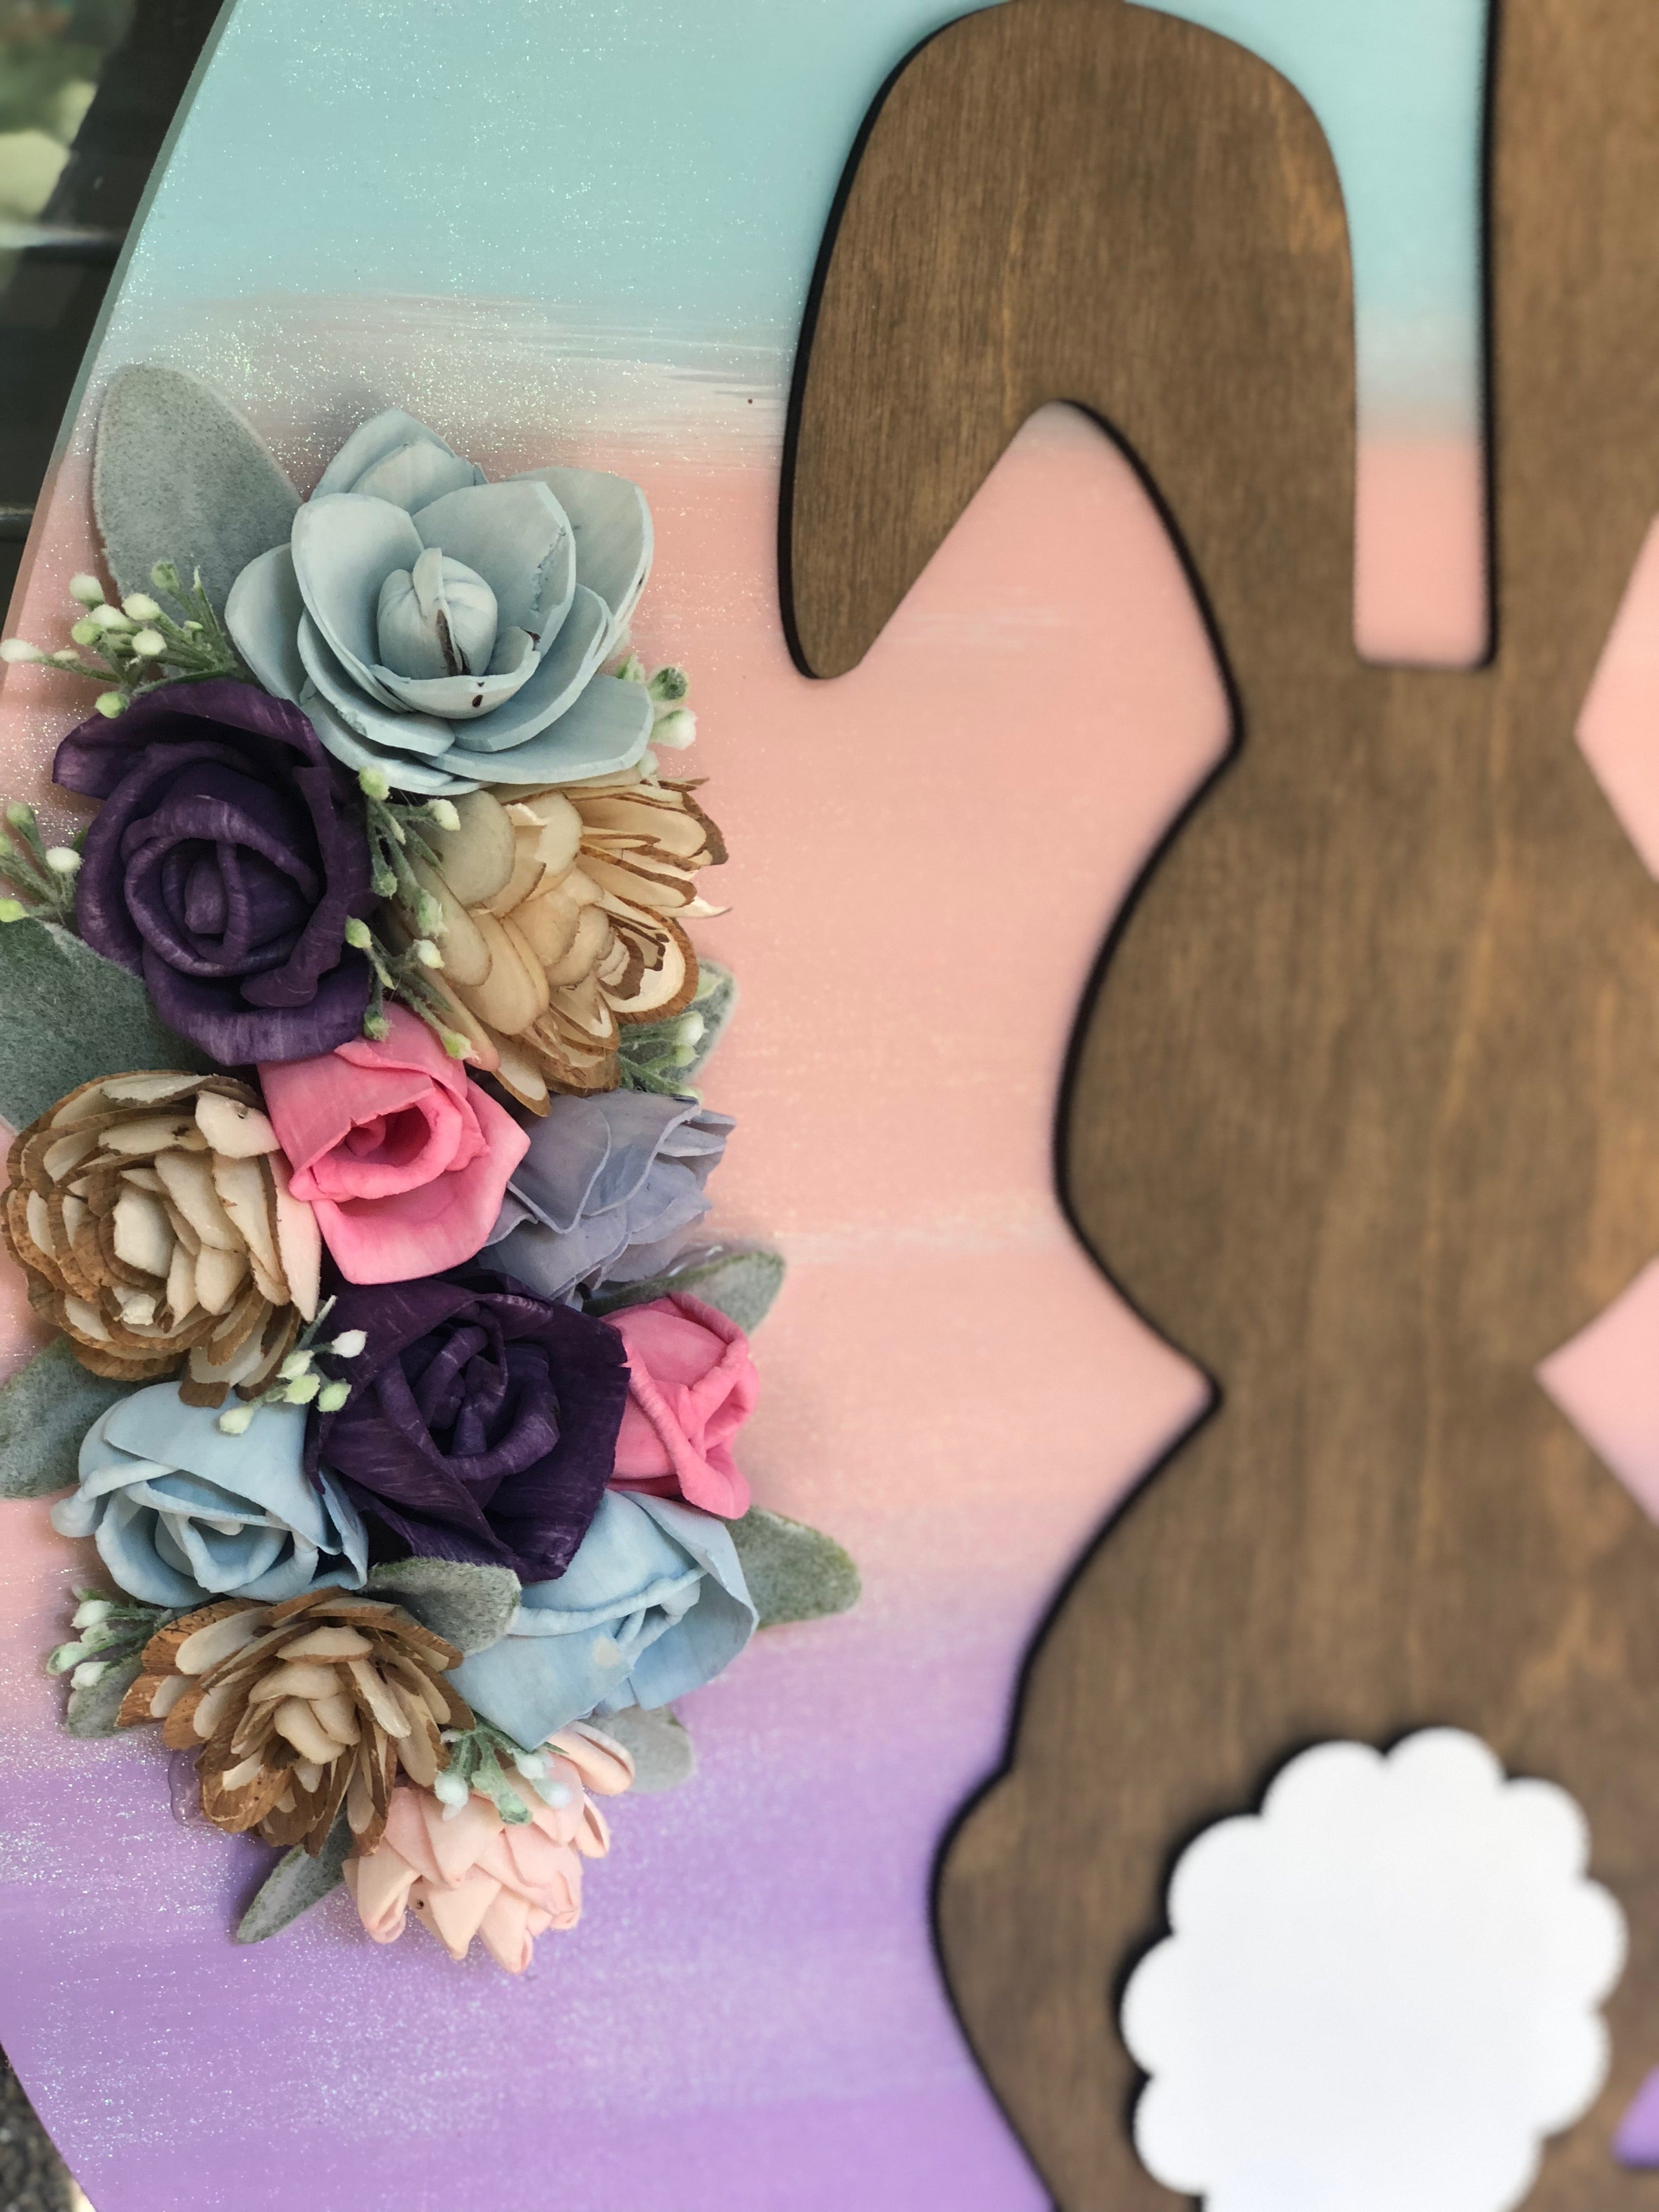 Bunny Egg Door Hanger with Wood Flowers Diy Kit